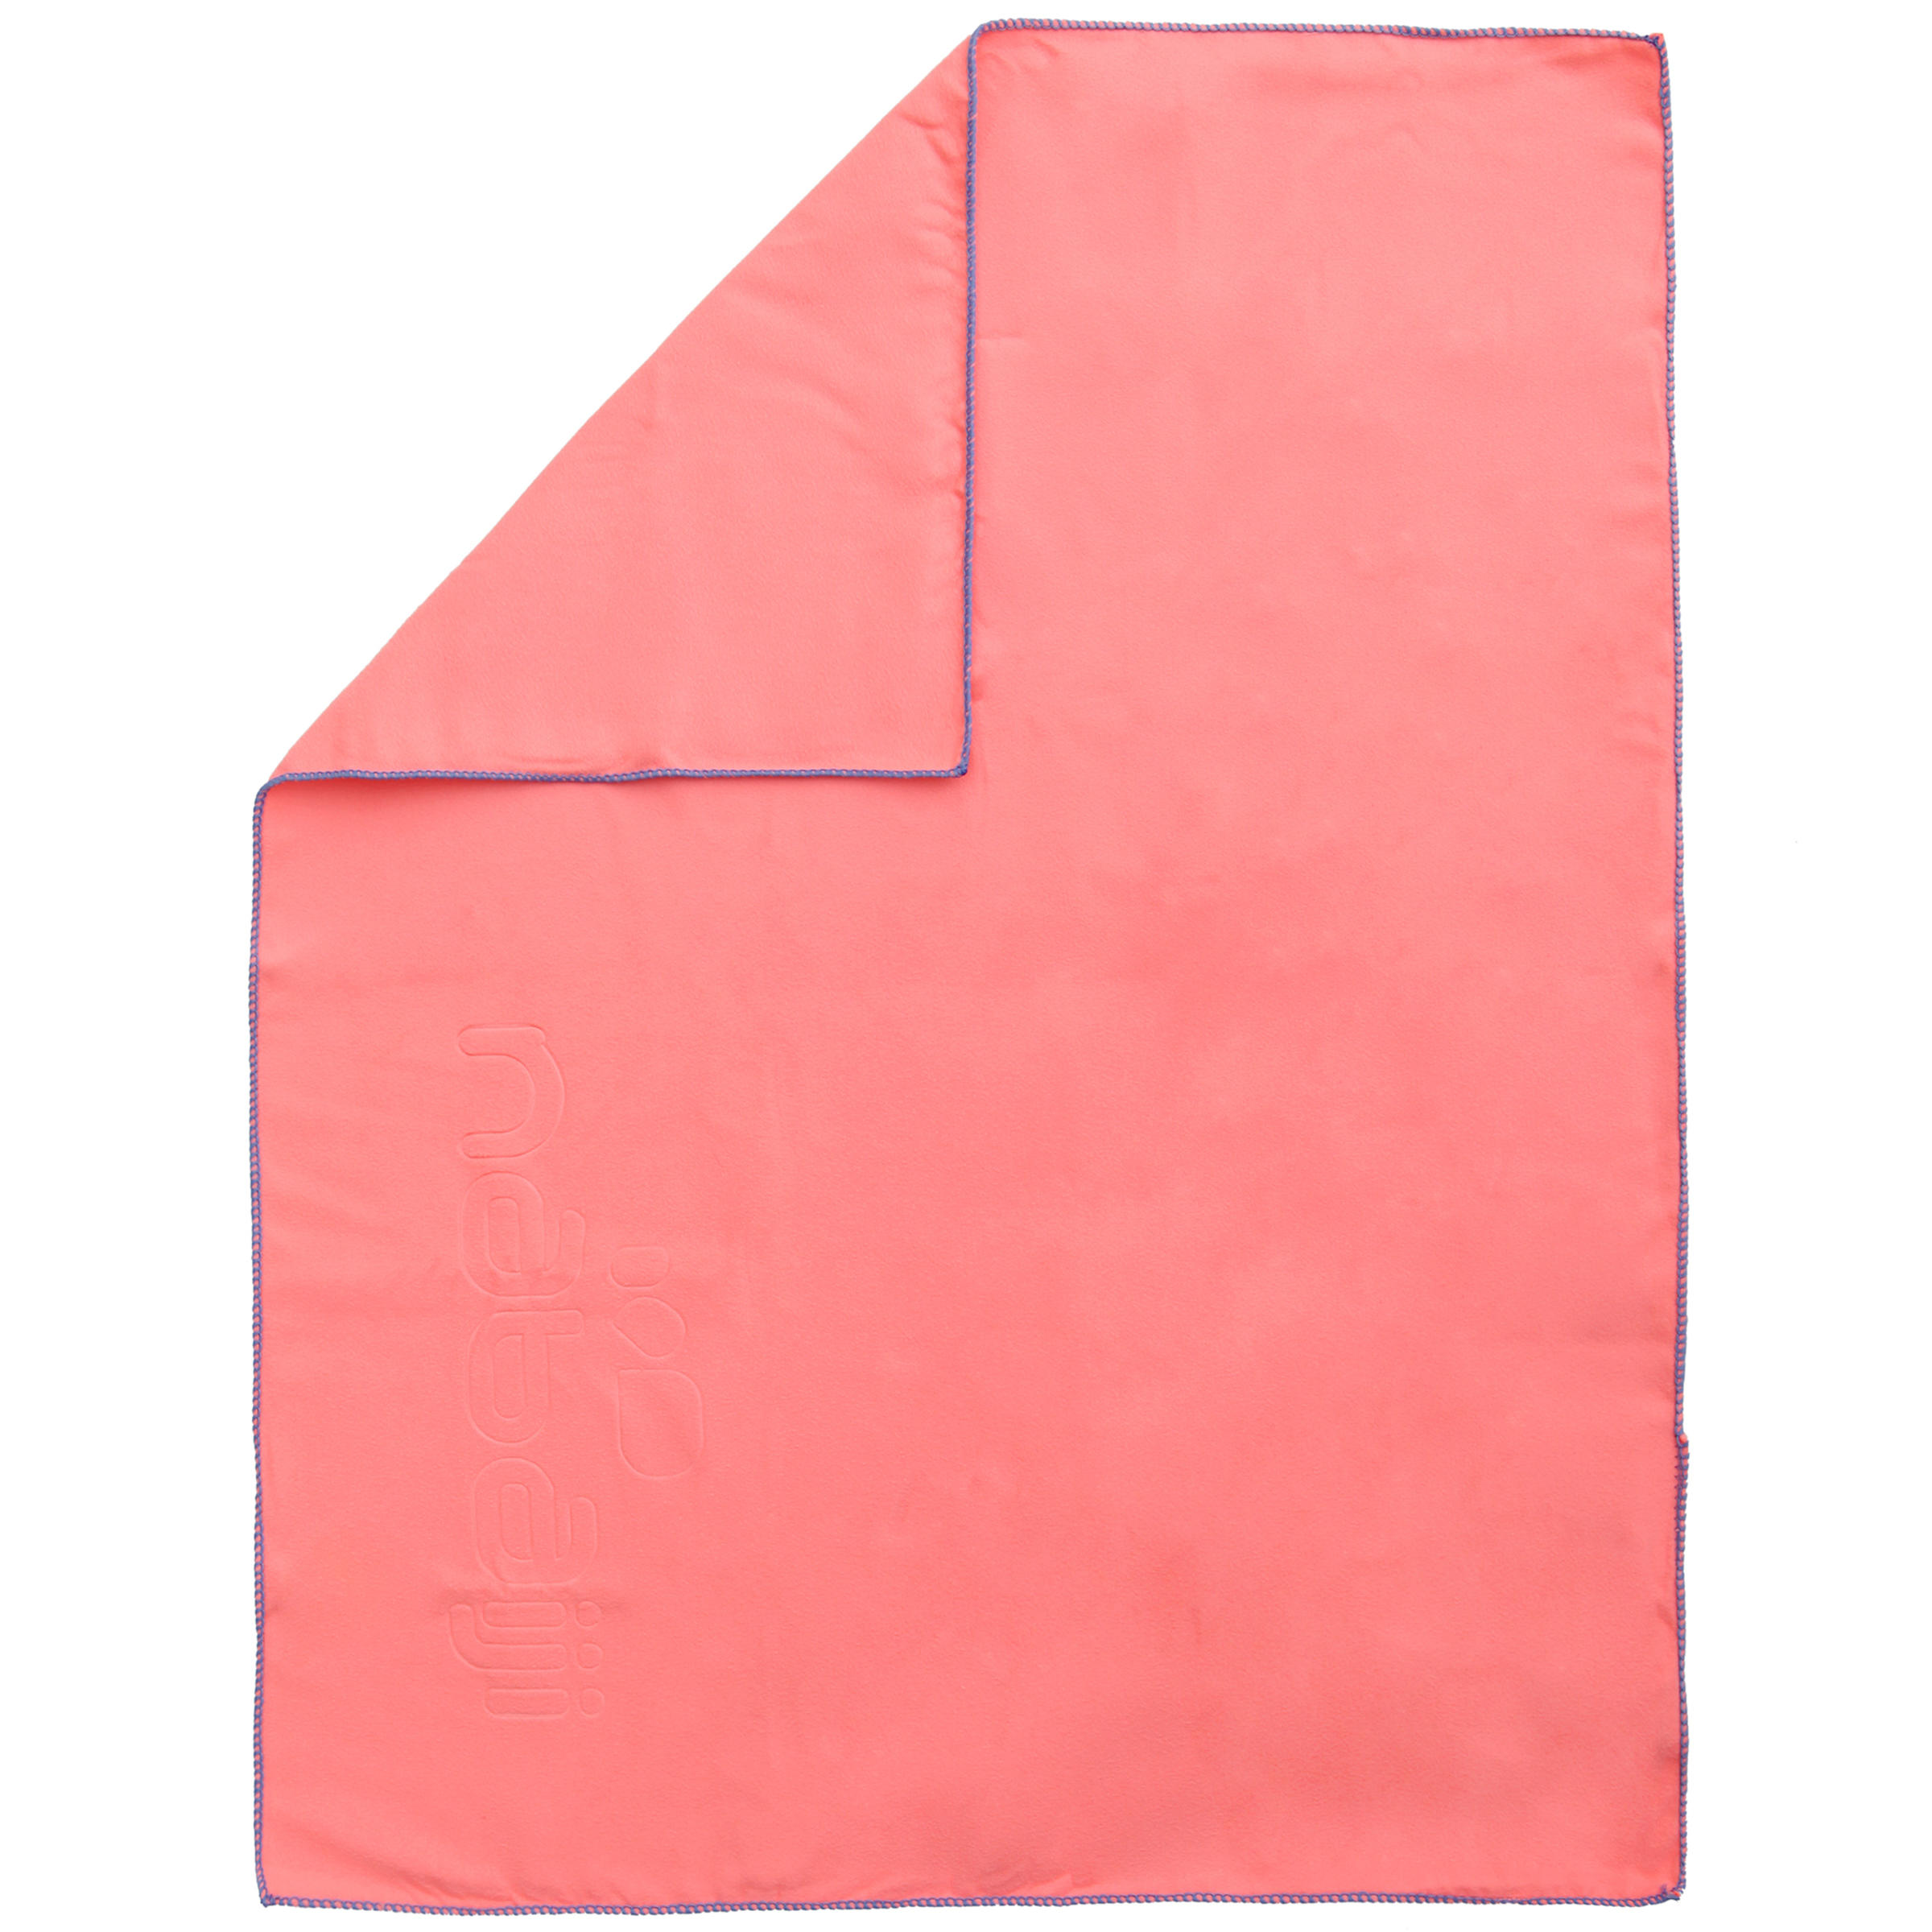 Ultra-Compact Microfibre Towel Size S 42 x 55 cm - Light Pink